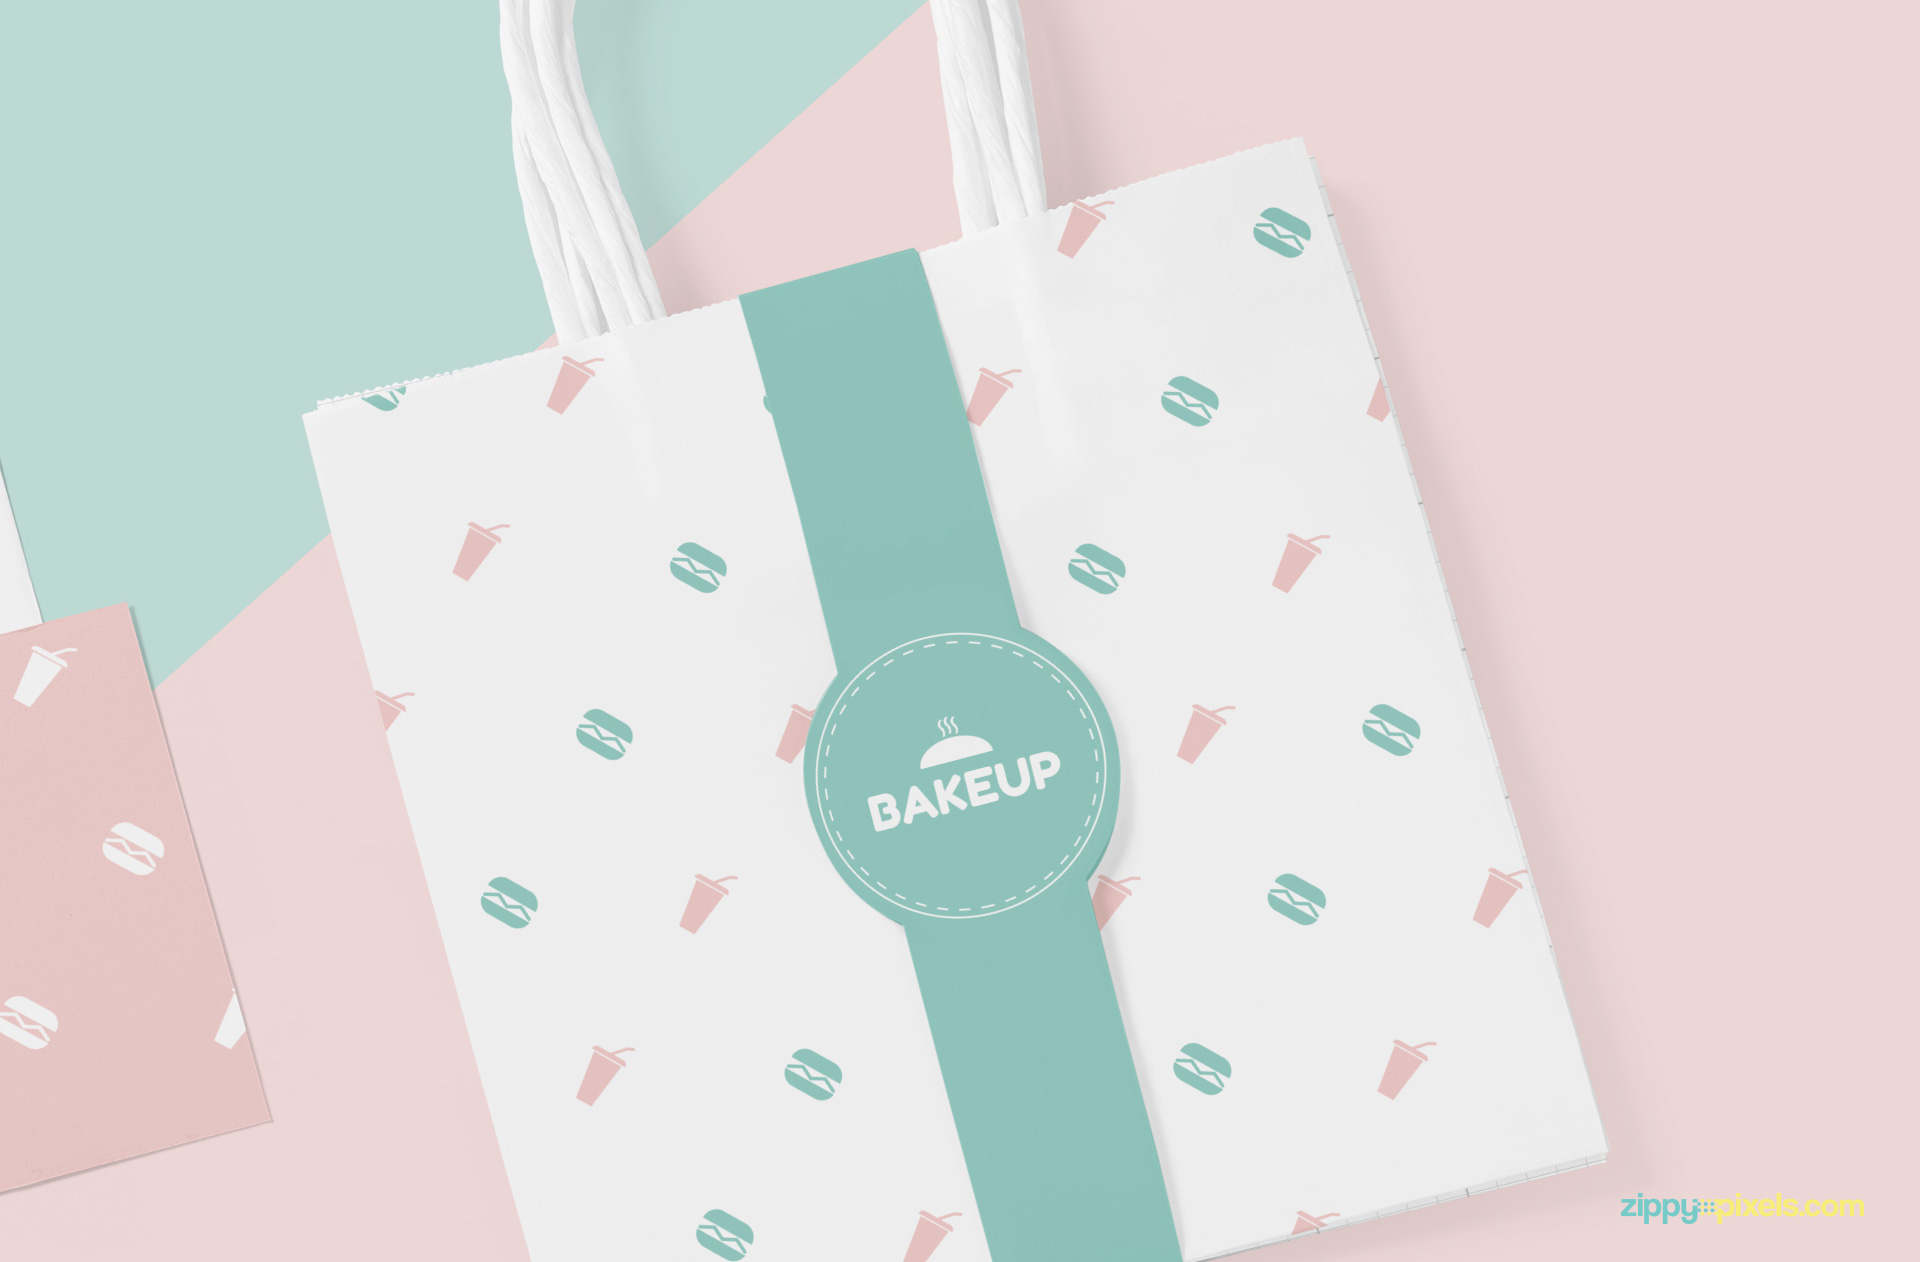 Changeable design of the tote bag label mockup.